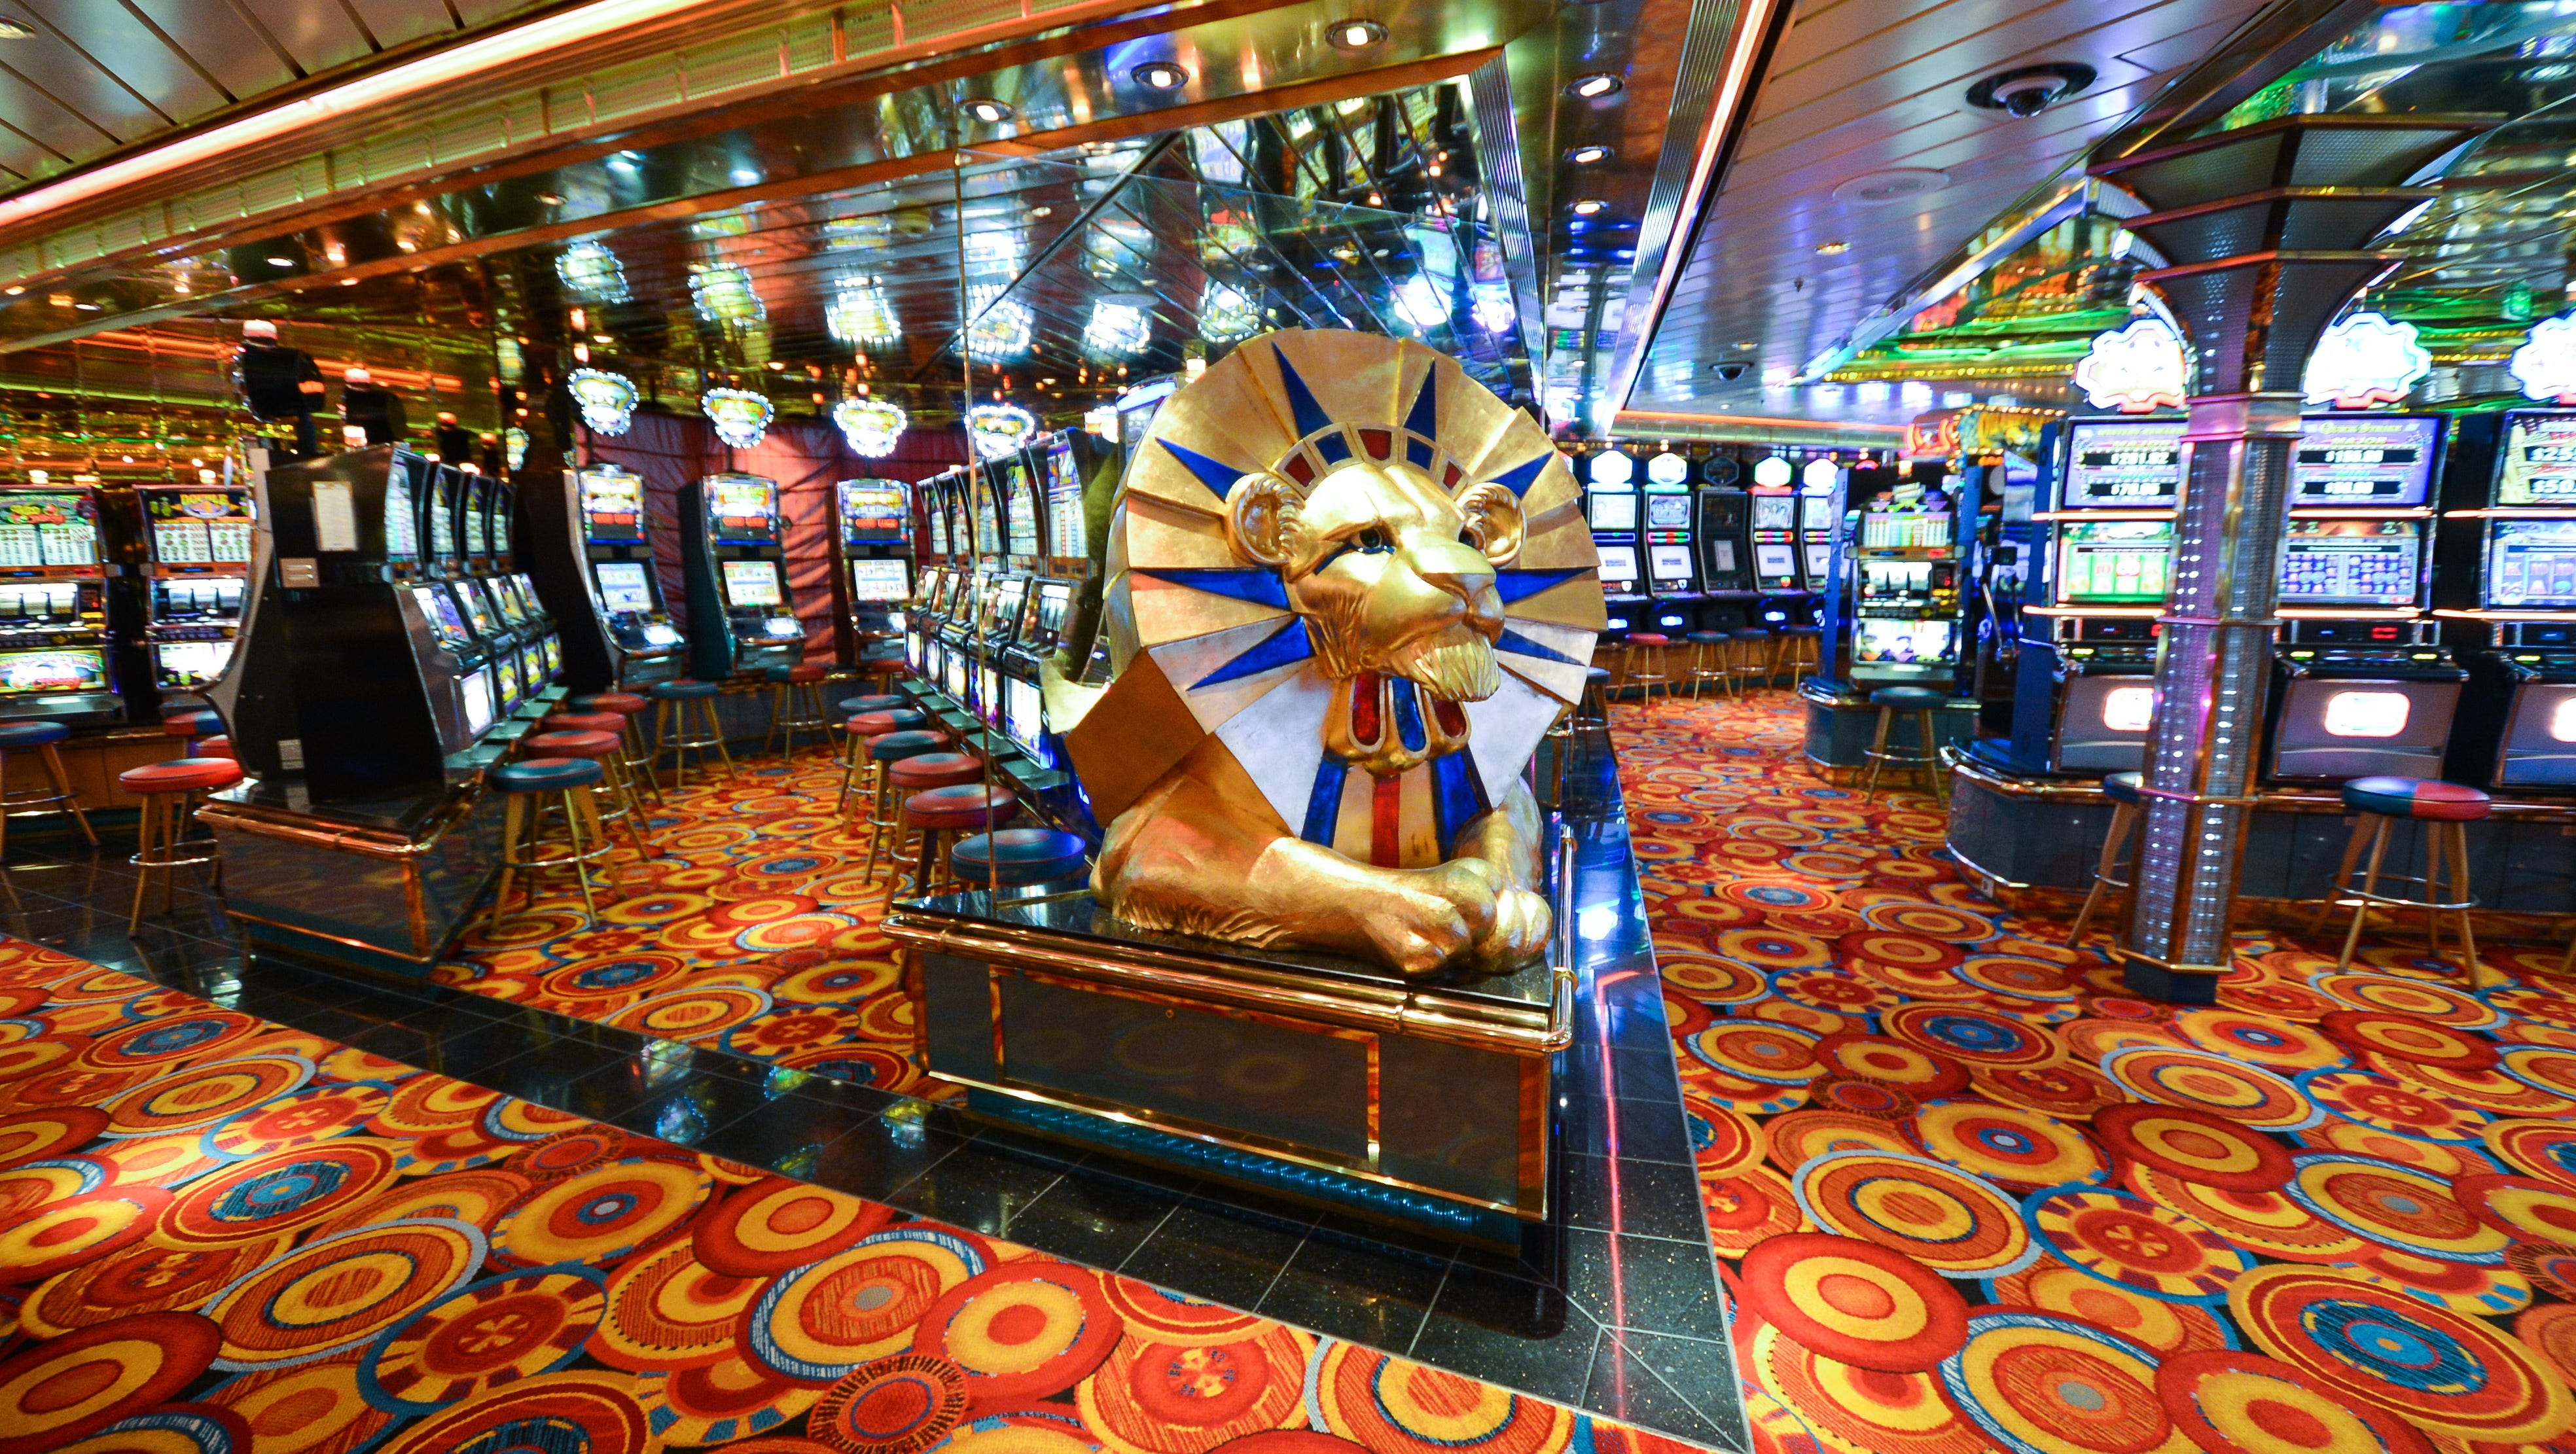 Casino Royale is big enough to hold nearly 300 people at a time and features both table games and slot machines.